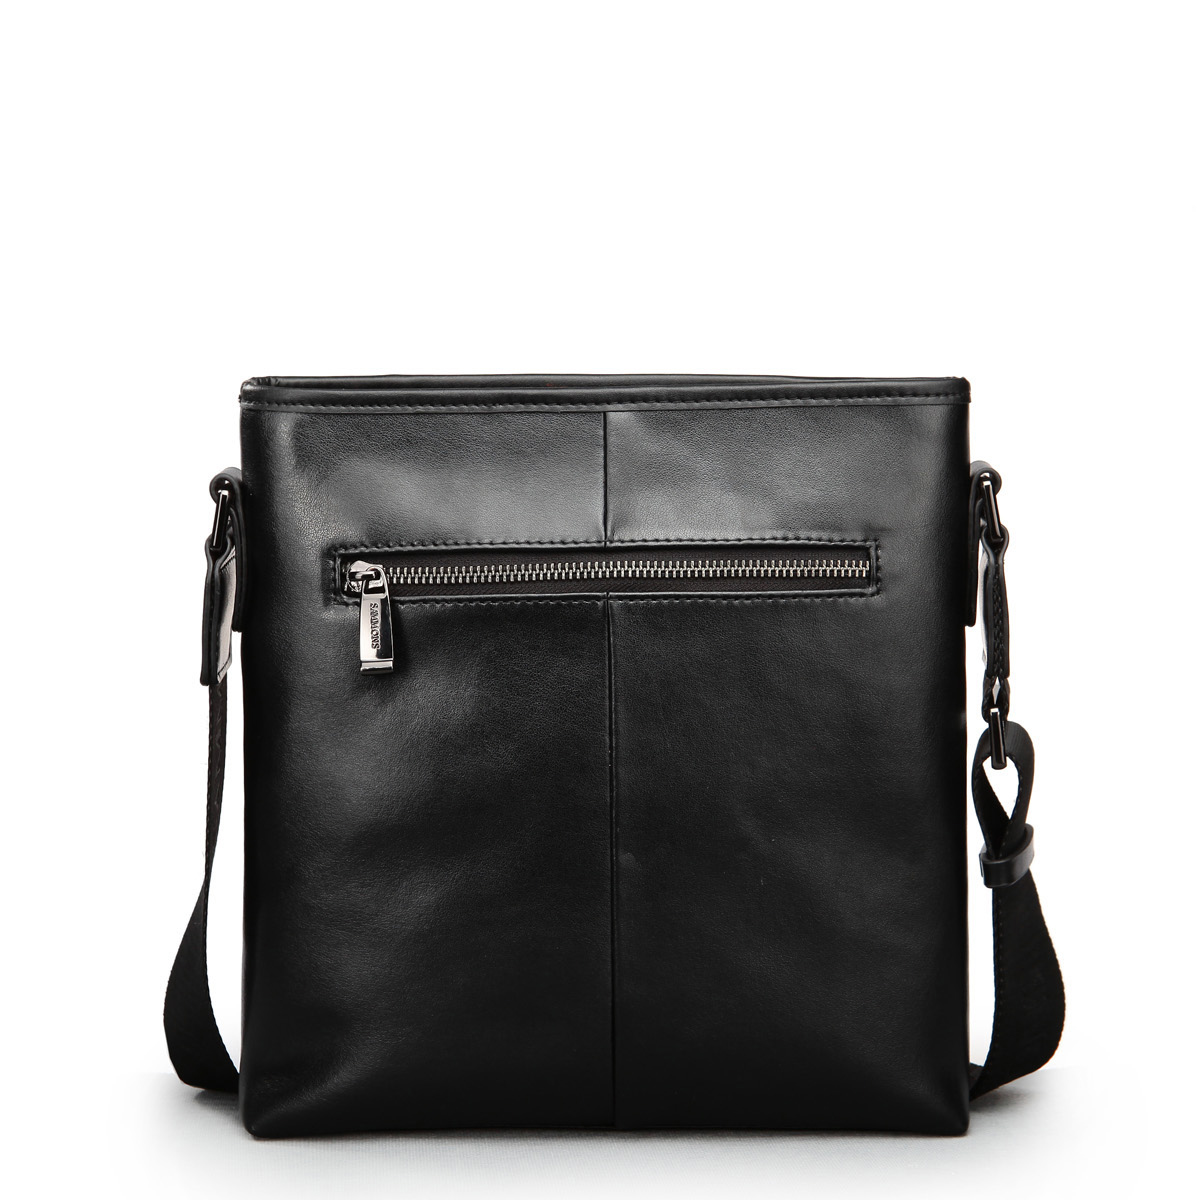 Shop black cloth crossbody bag from Asos, Balenciaga, Cuyana and from Asos, BALENCIAGA, Dooney & Bourke and many more. Find thousands of new high fashion items in one place.